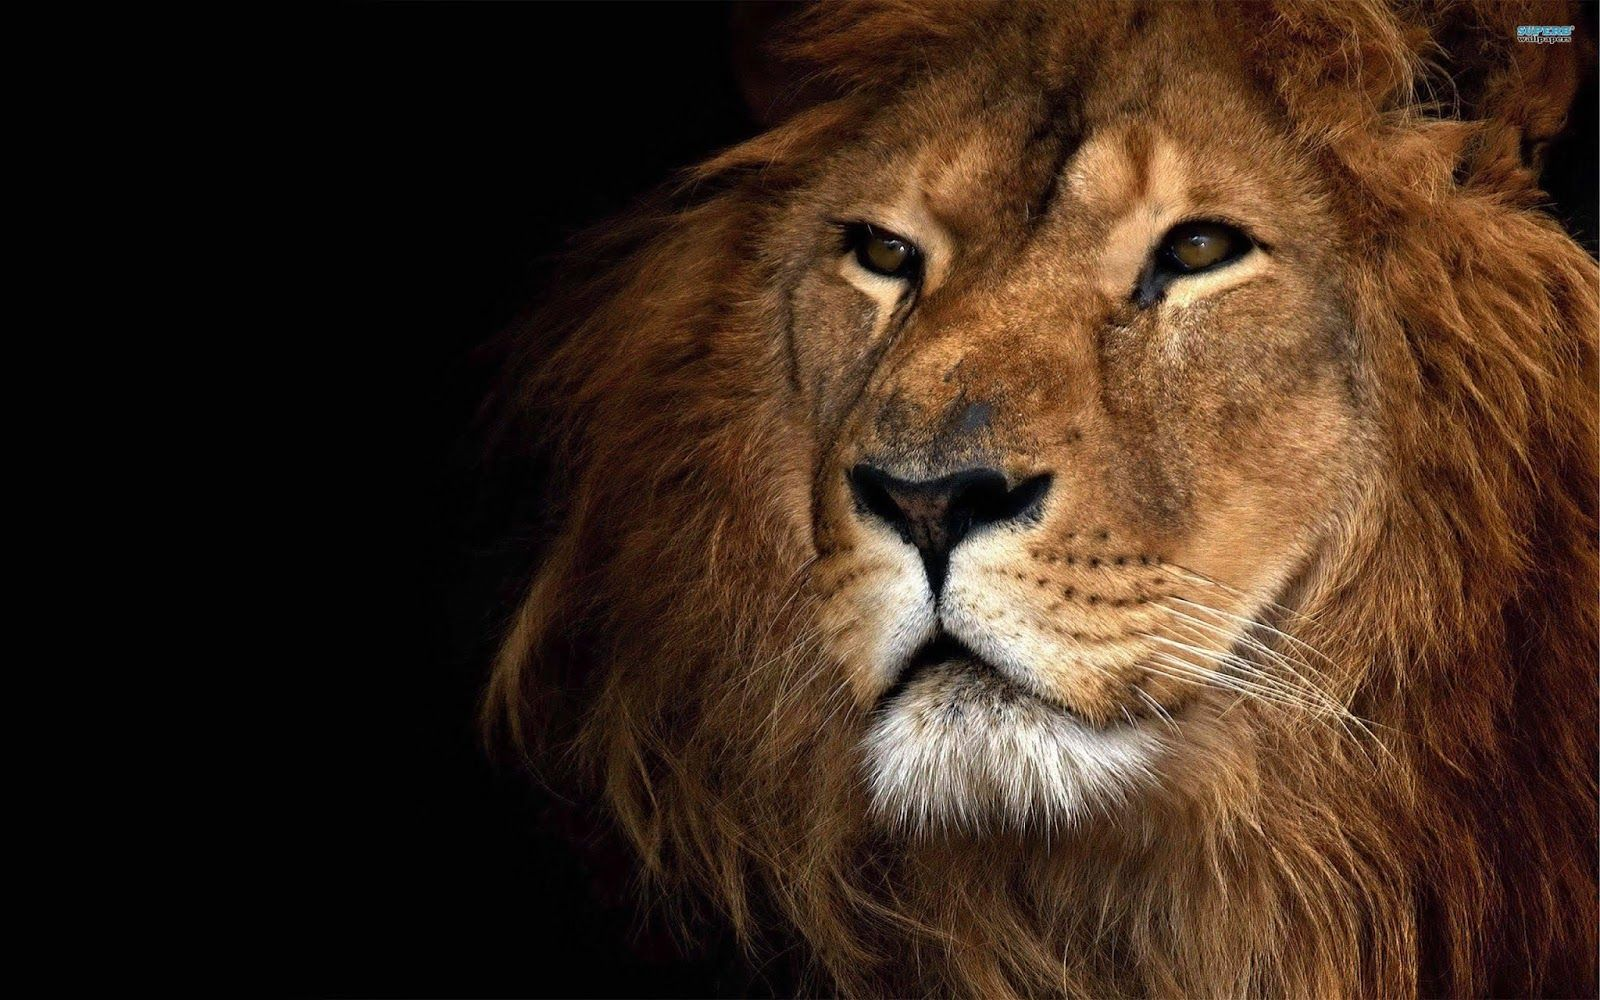 1080p Hd Lion Wallpapers Free High Quality Desktop Iphone And